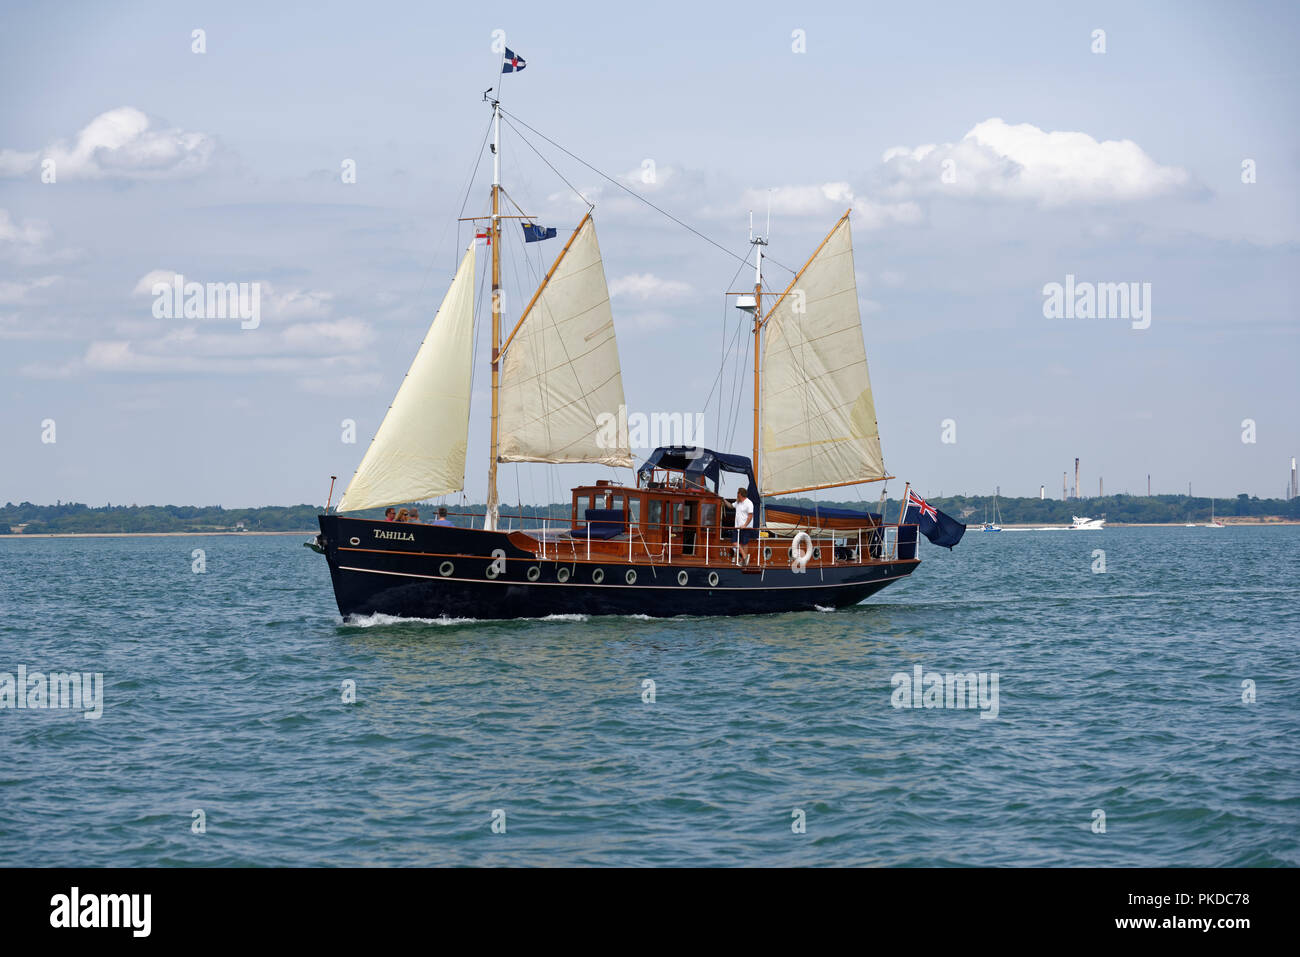 Historic sailing ketch Tahilla (formely Skylark) cruising on the Solent during the Cowes Week regatta. - Stock Image